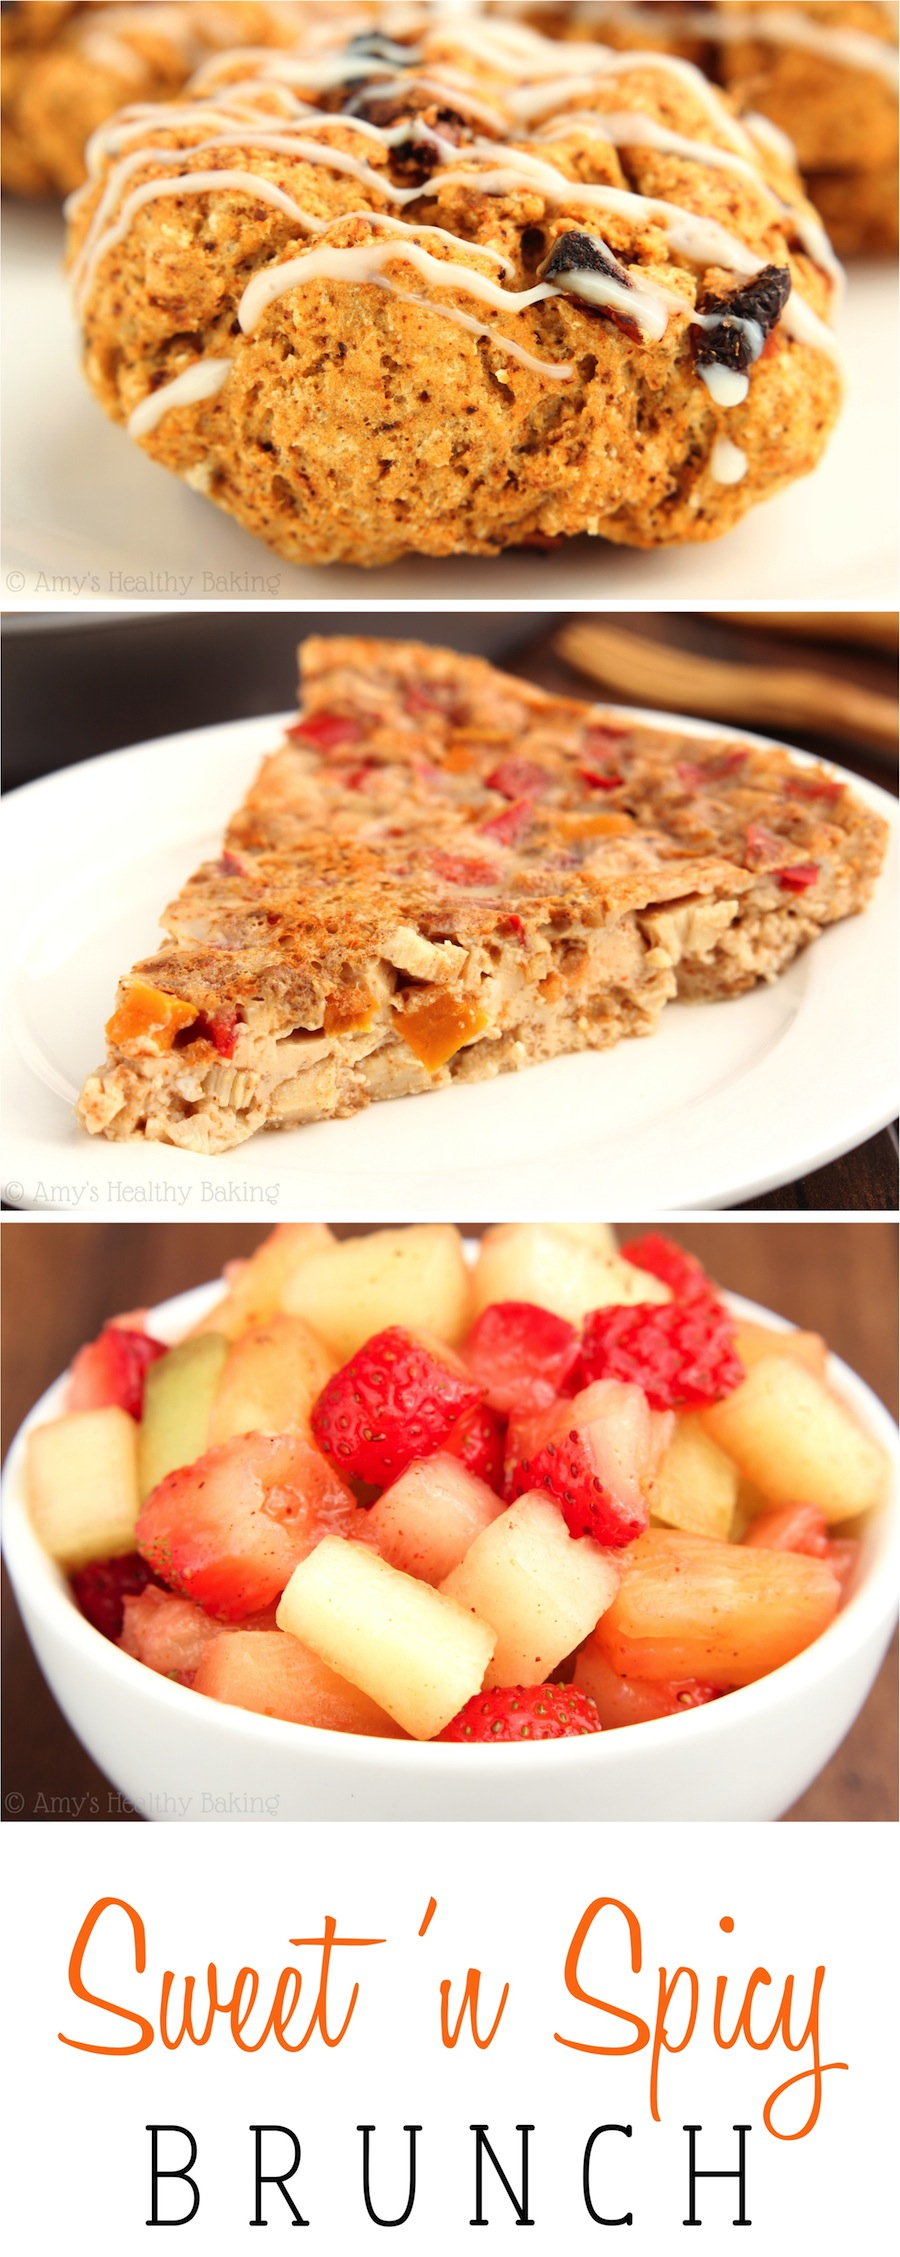 Scones, quiche & fruit salsa -- the ultimate brunch! Super easy, gluten-free & make-ahead so you can still sleep in!